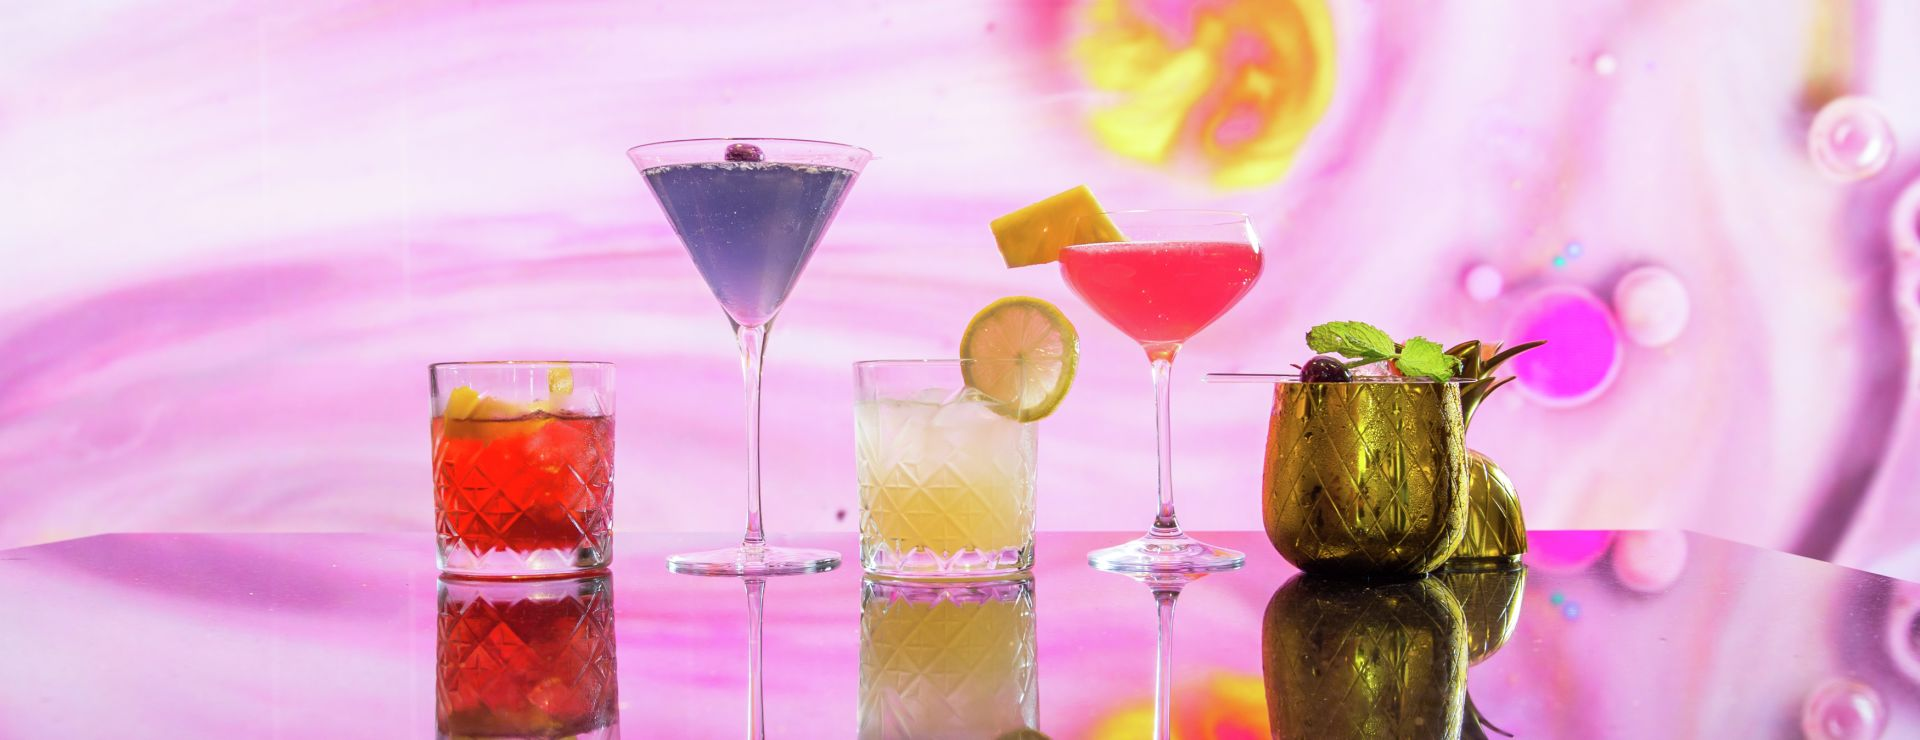 Variety of cocktails lined up on table with abstract background